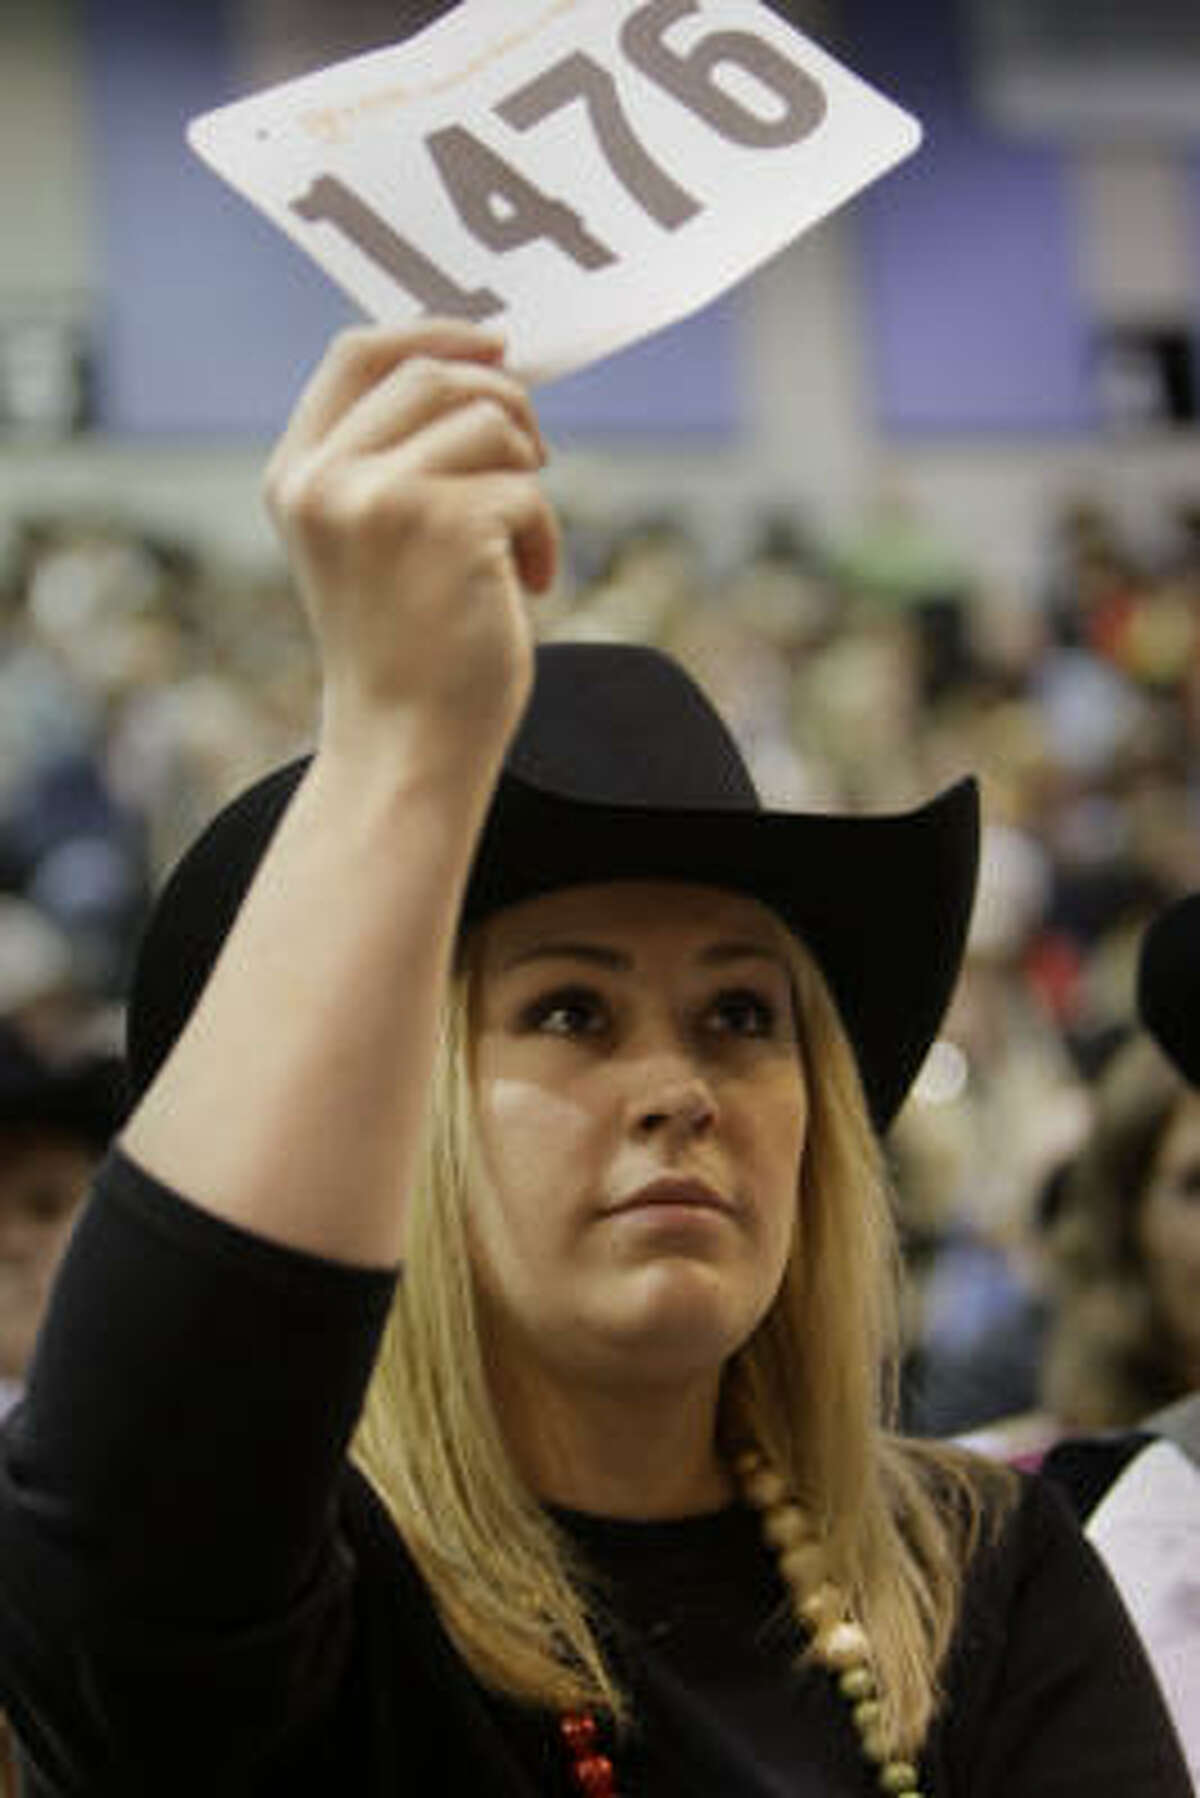 Laura McIngvale bids on the Grand Champion during the Junior Market Steer Auction at Reliant Arena Sales Pavilion at the Houston Livestock Show and Rodeo on Saturday, March 14, 2009, in Houston.